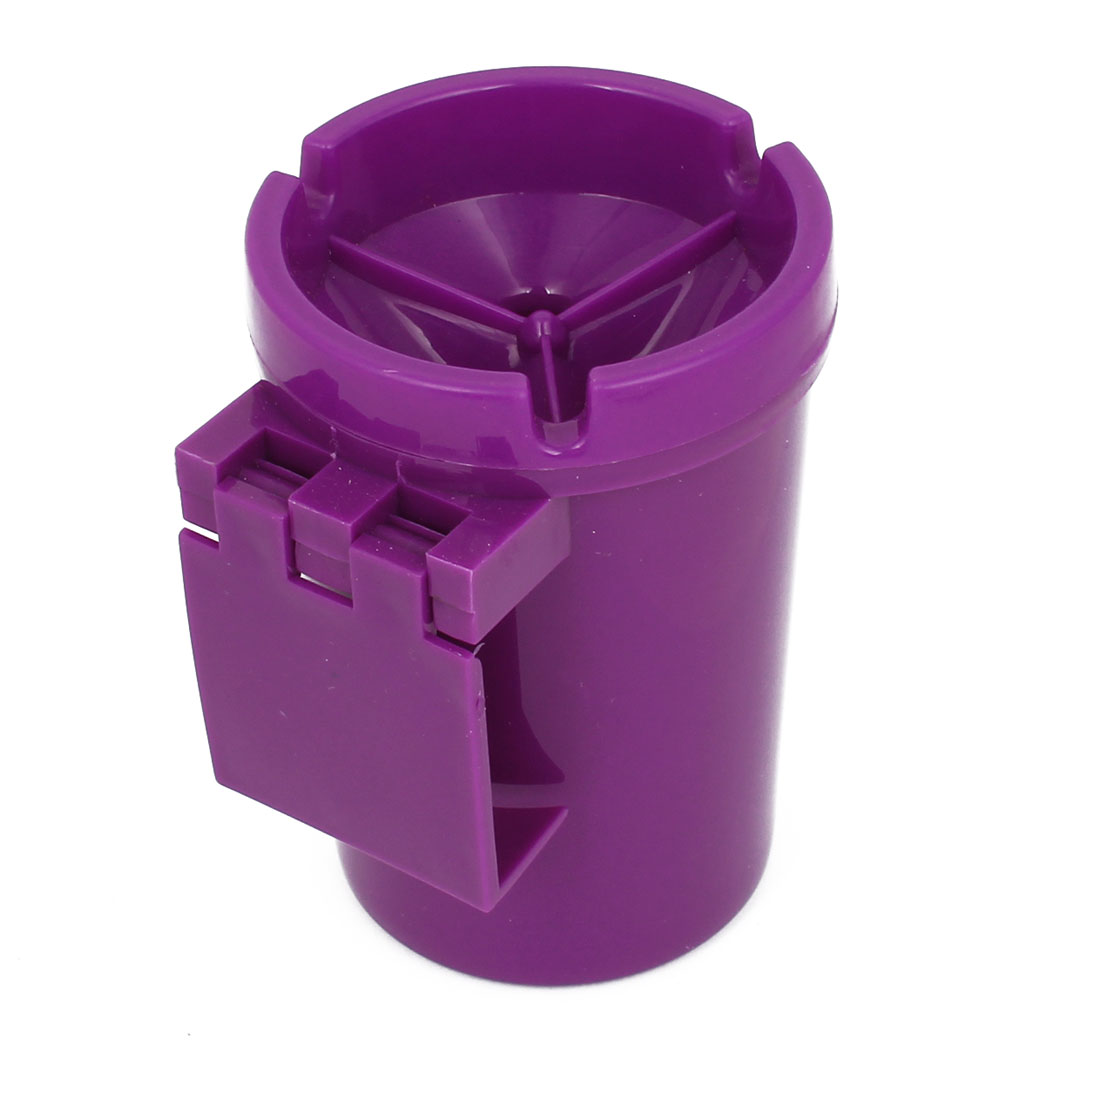 Car Purple Plastic Clip 3 Groove Cup Shape Cigarette Ash Holder Container Ashtray